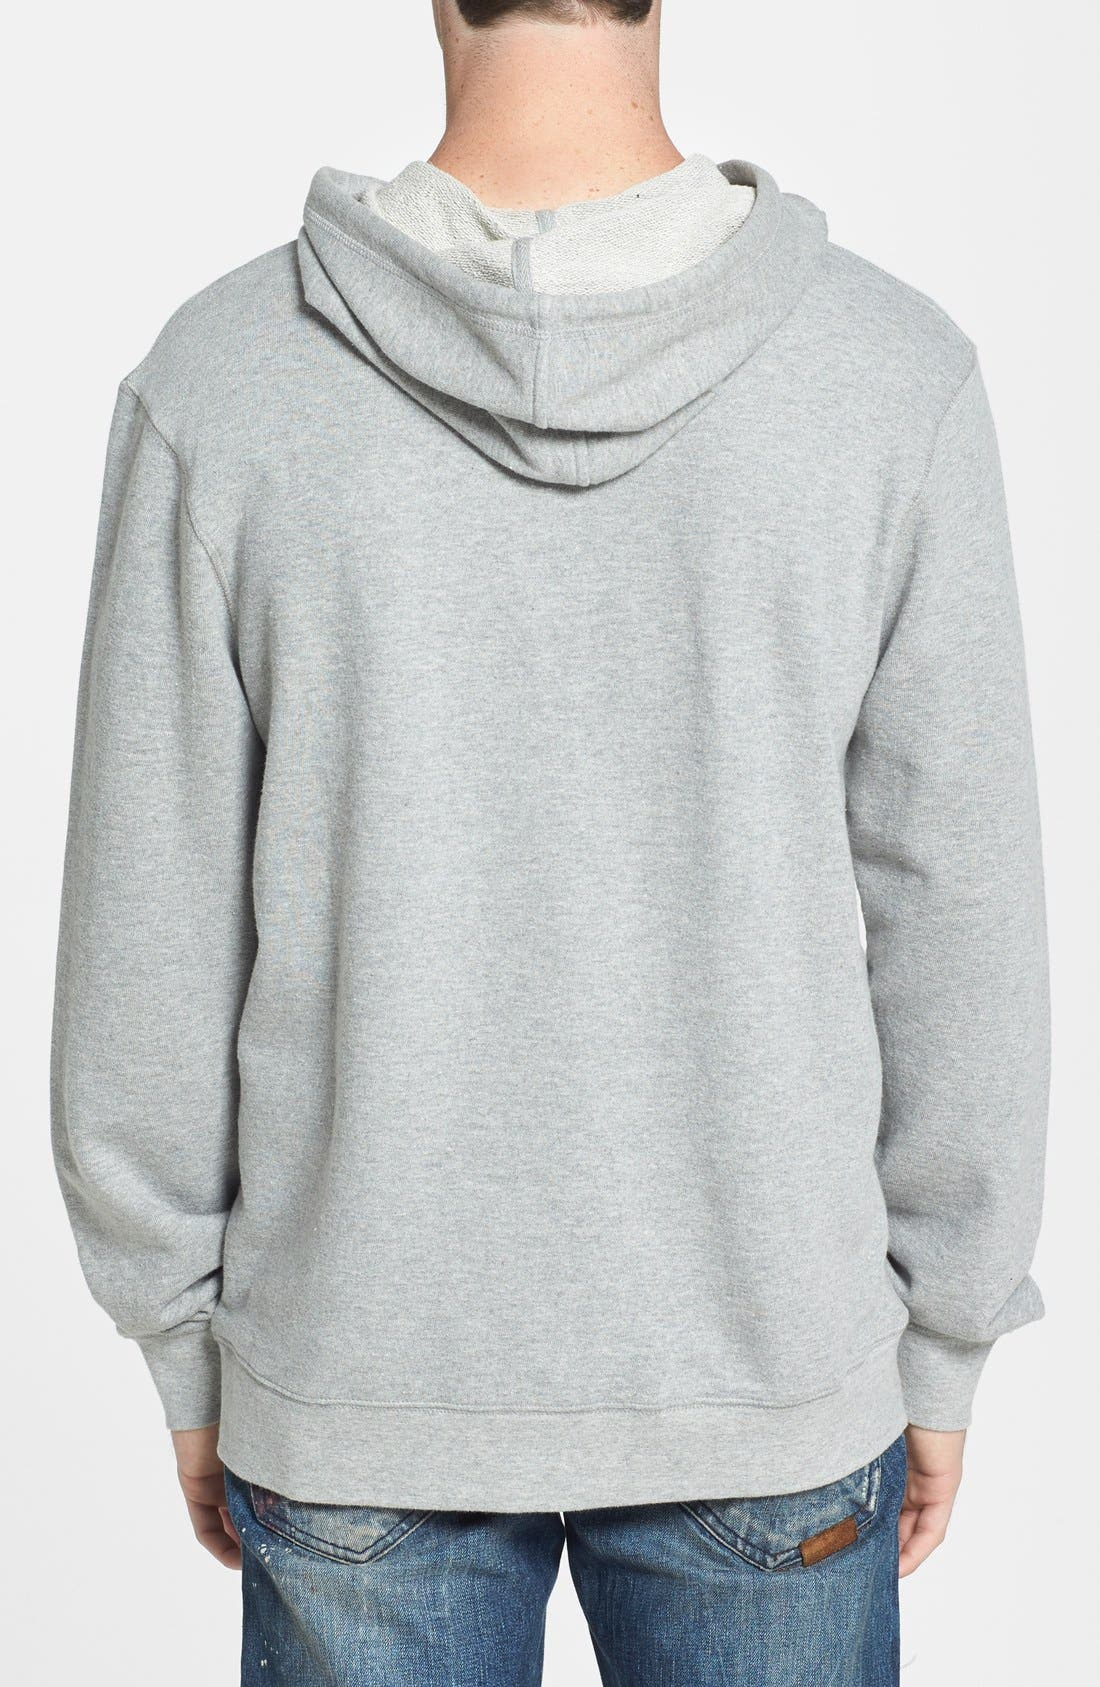 'Dissent' Hoodie,                             Alternate thumbnail 2, color,                             Heather Grey